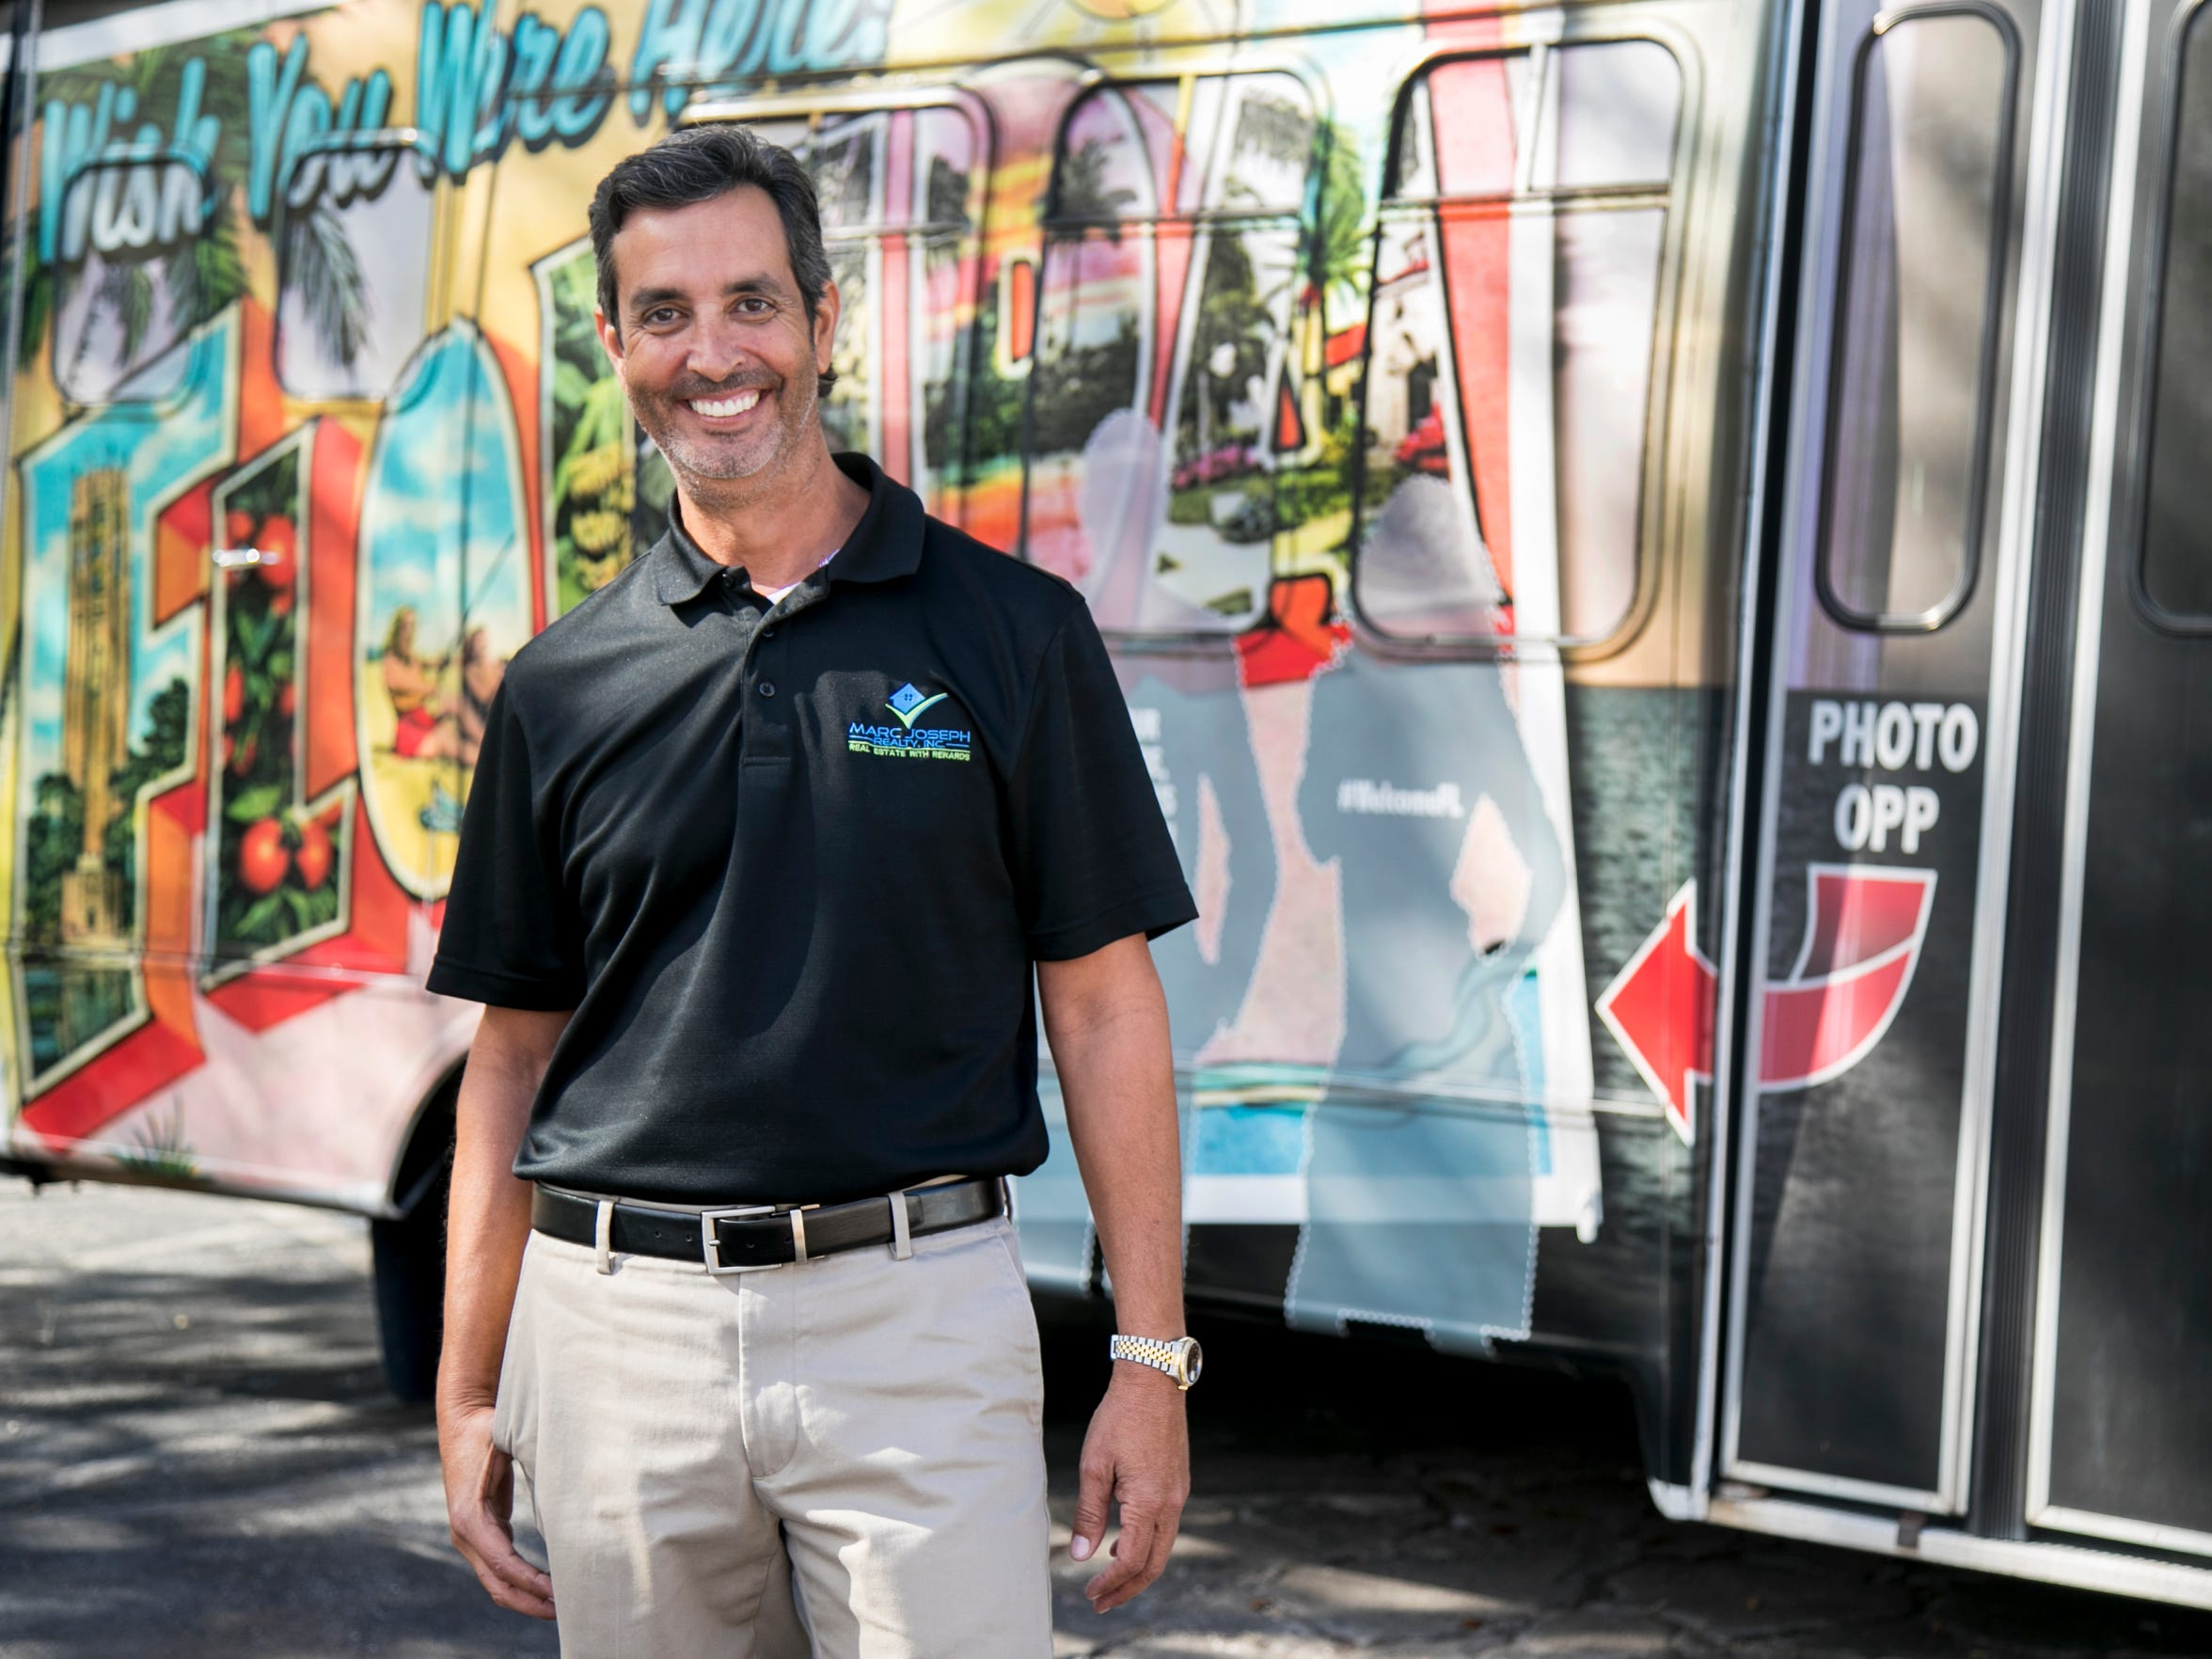 Fort Myers Broker Marc Joseph used to have Foreclosure Tours R Us on the side of his bus. He now has a more positive vibe to match the current real estate market.